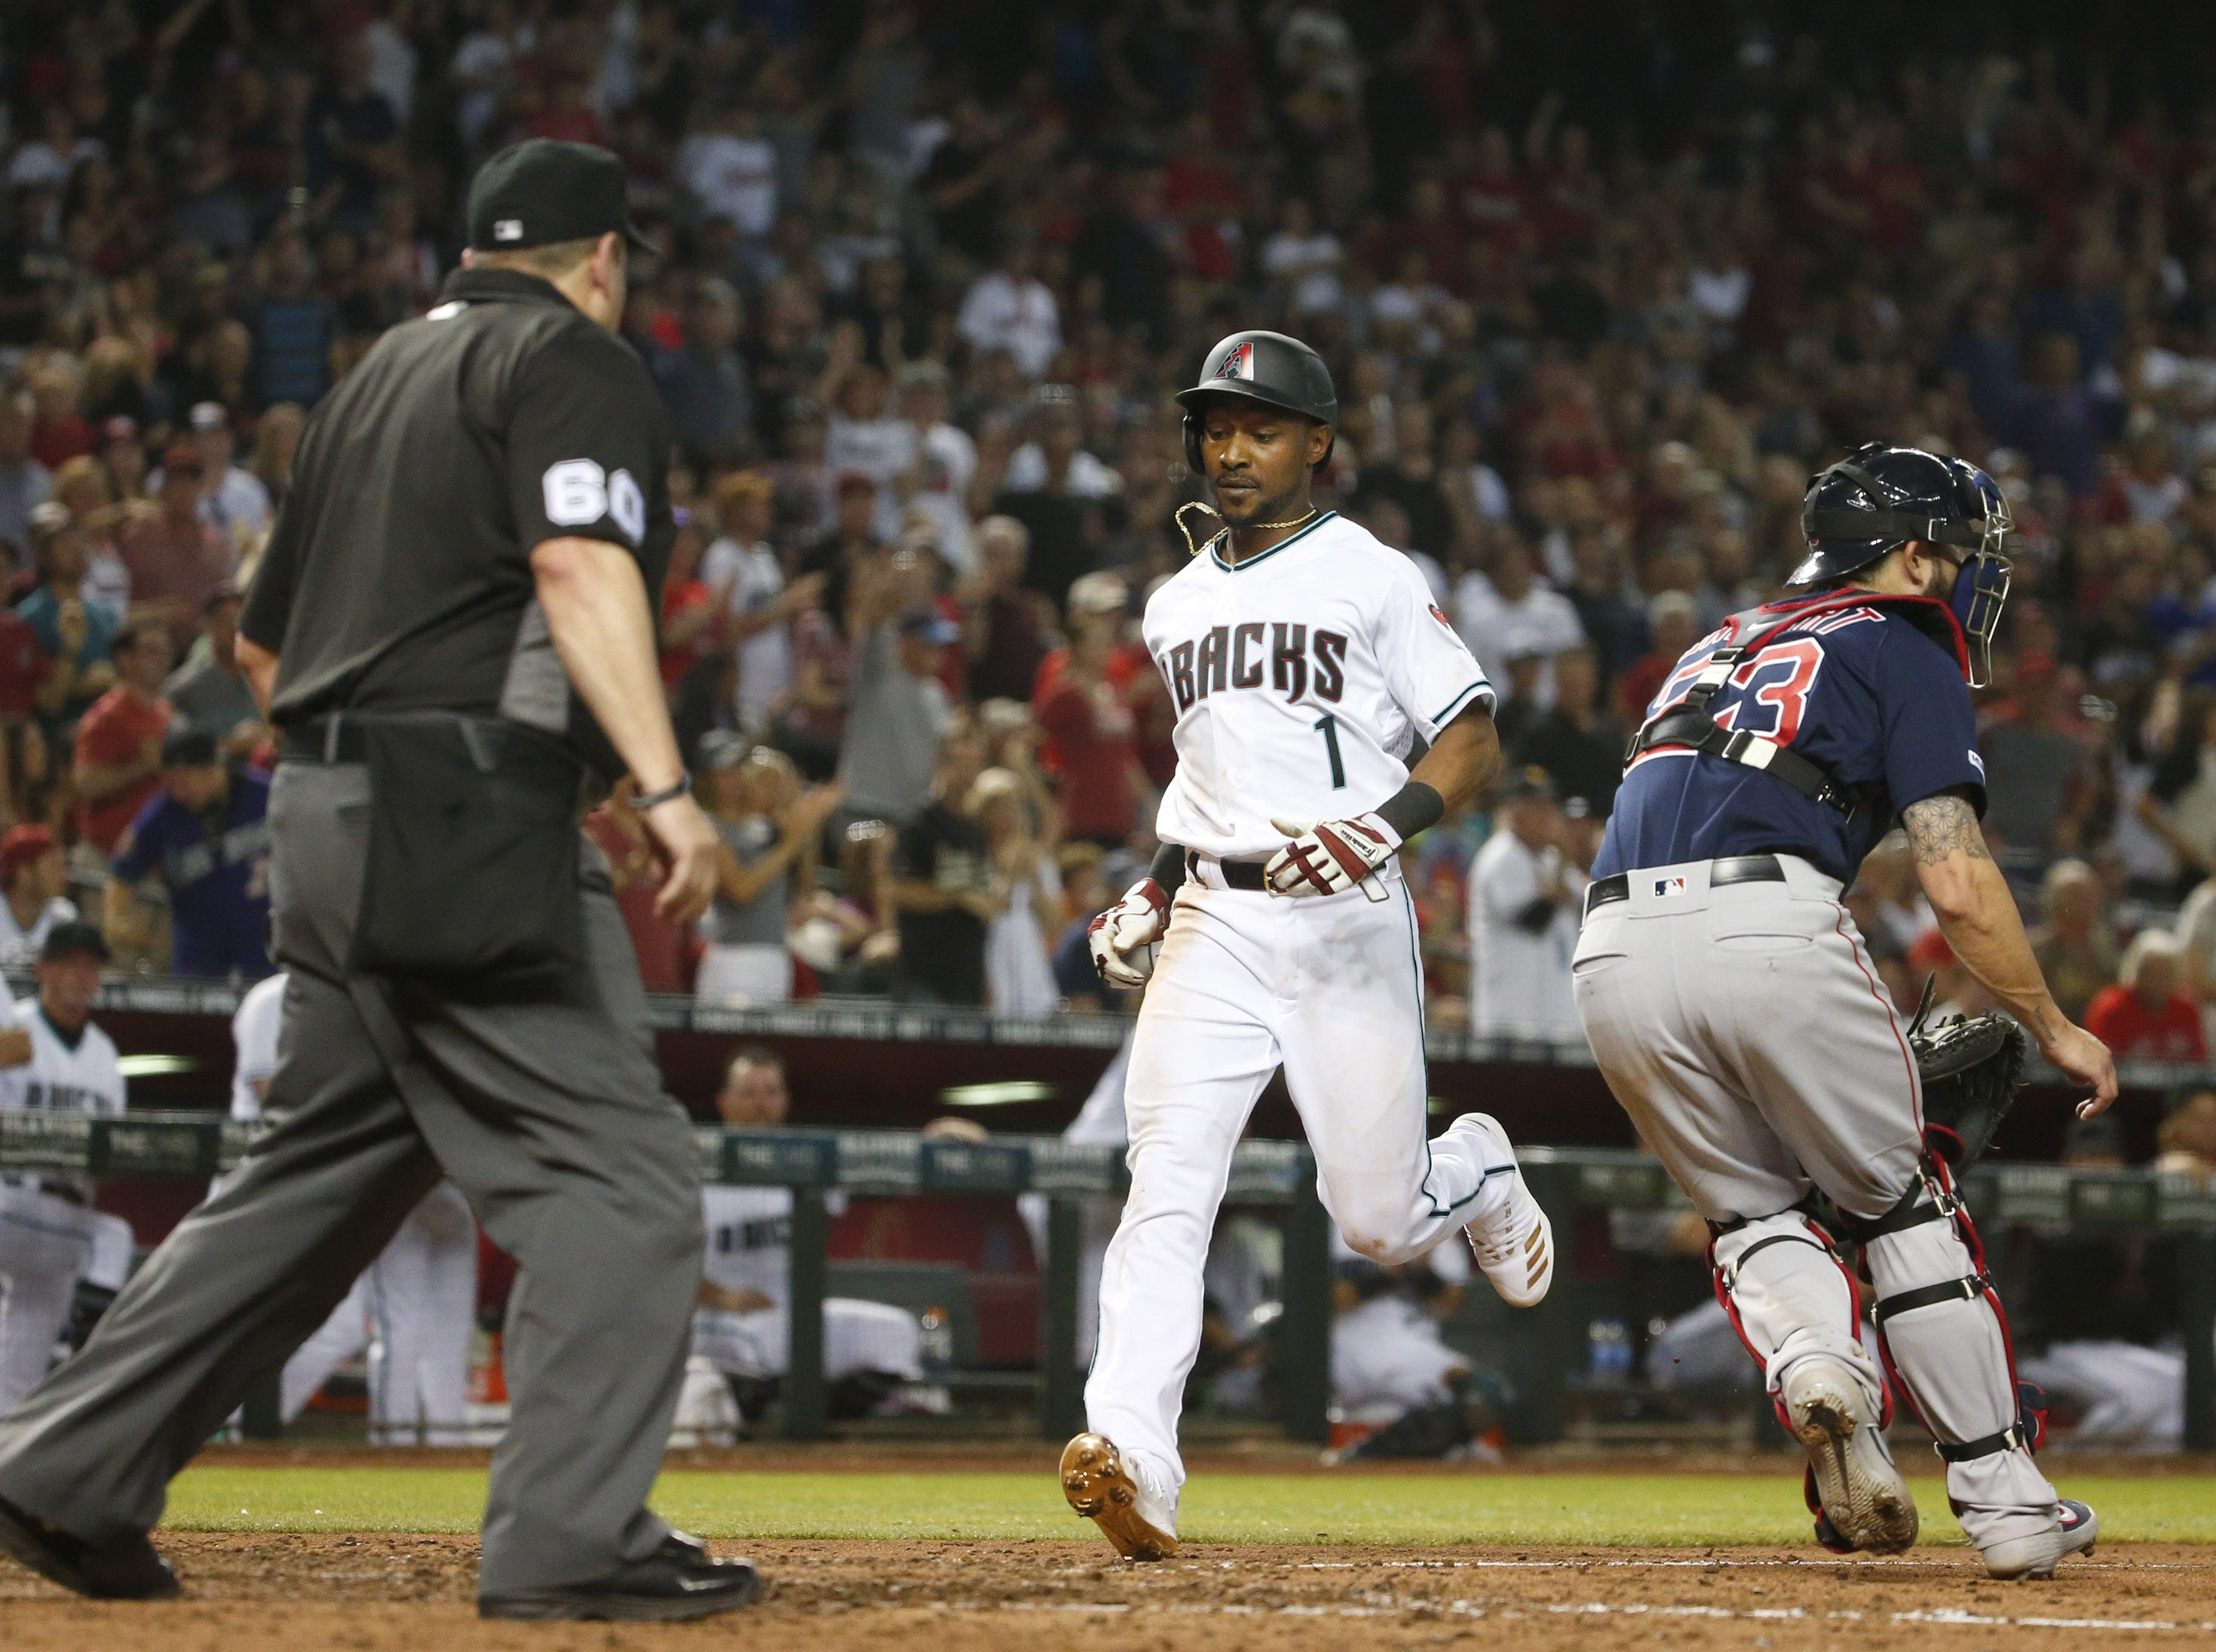 Arizona Diamondbacks center fielder Jarrod Dyson (1) scores a run during Opening Day against the Boston Red Sox at Chase Field in Phoenix on April 5.